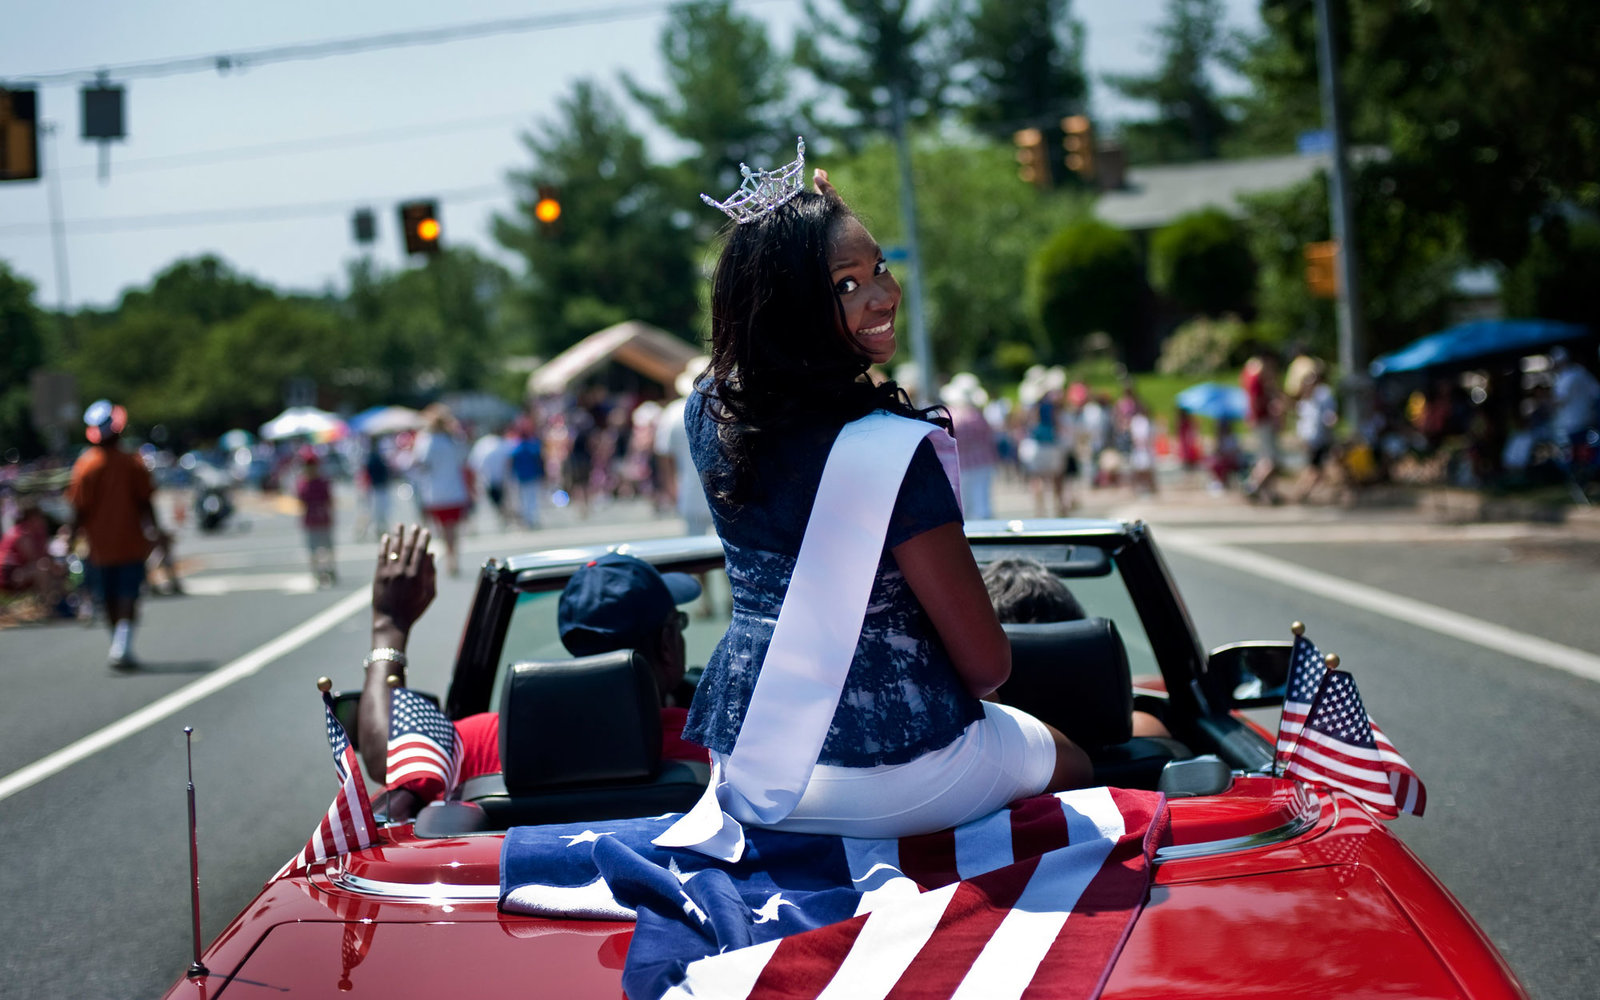 Dale City Virginia July 4 Parade Outstanding Teen of Hampton Roads, Alanna Ball